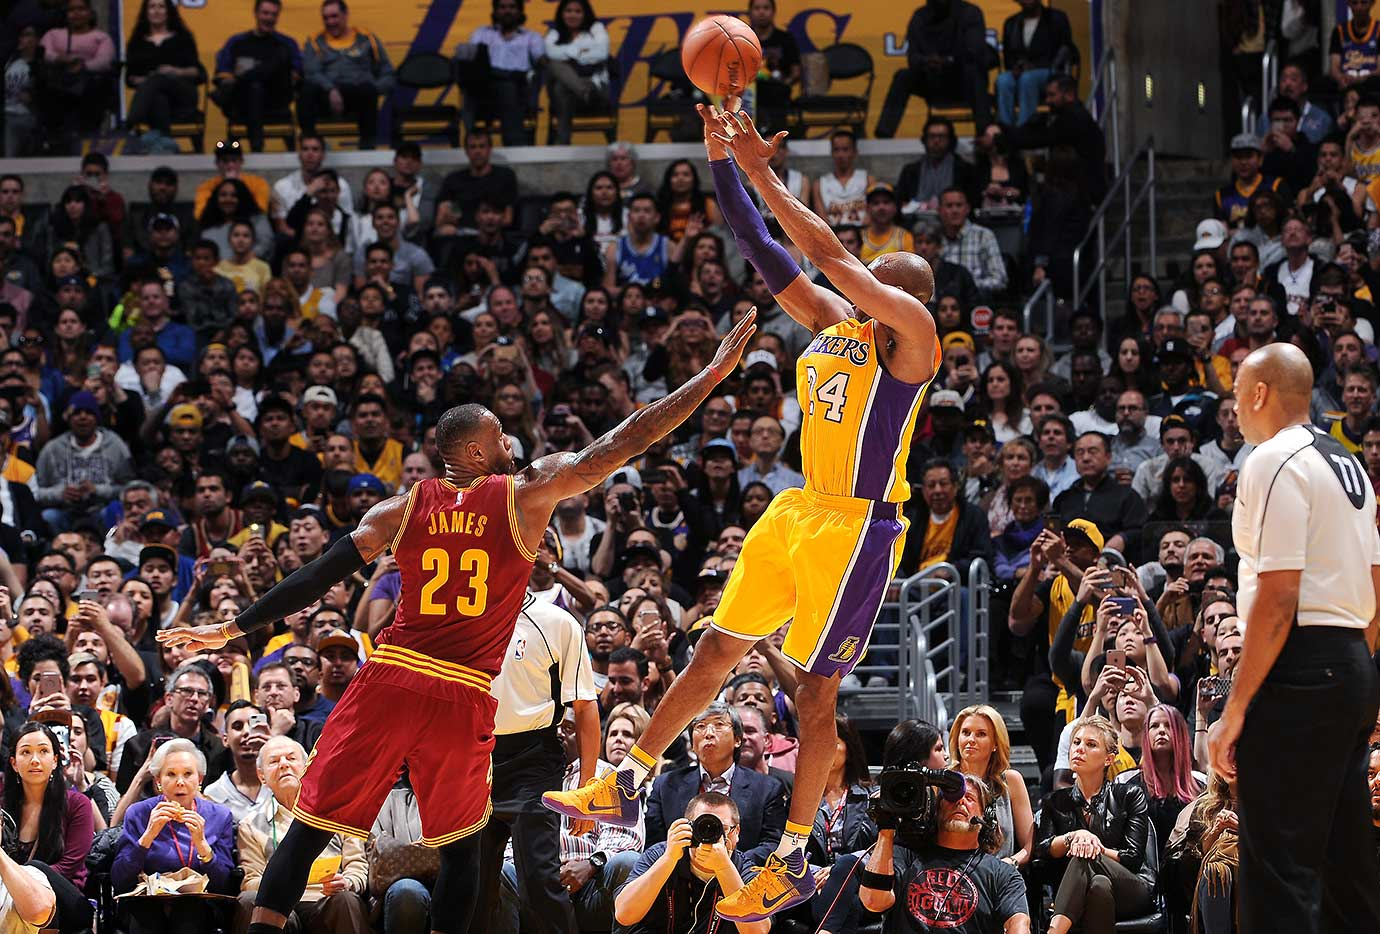 Kobe Bryant made 11 of 16 shots for 26 points against LeBron James and the Cavaliers.